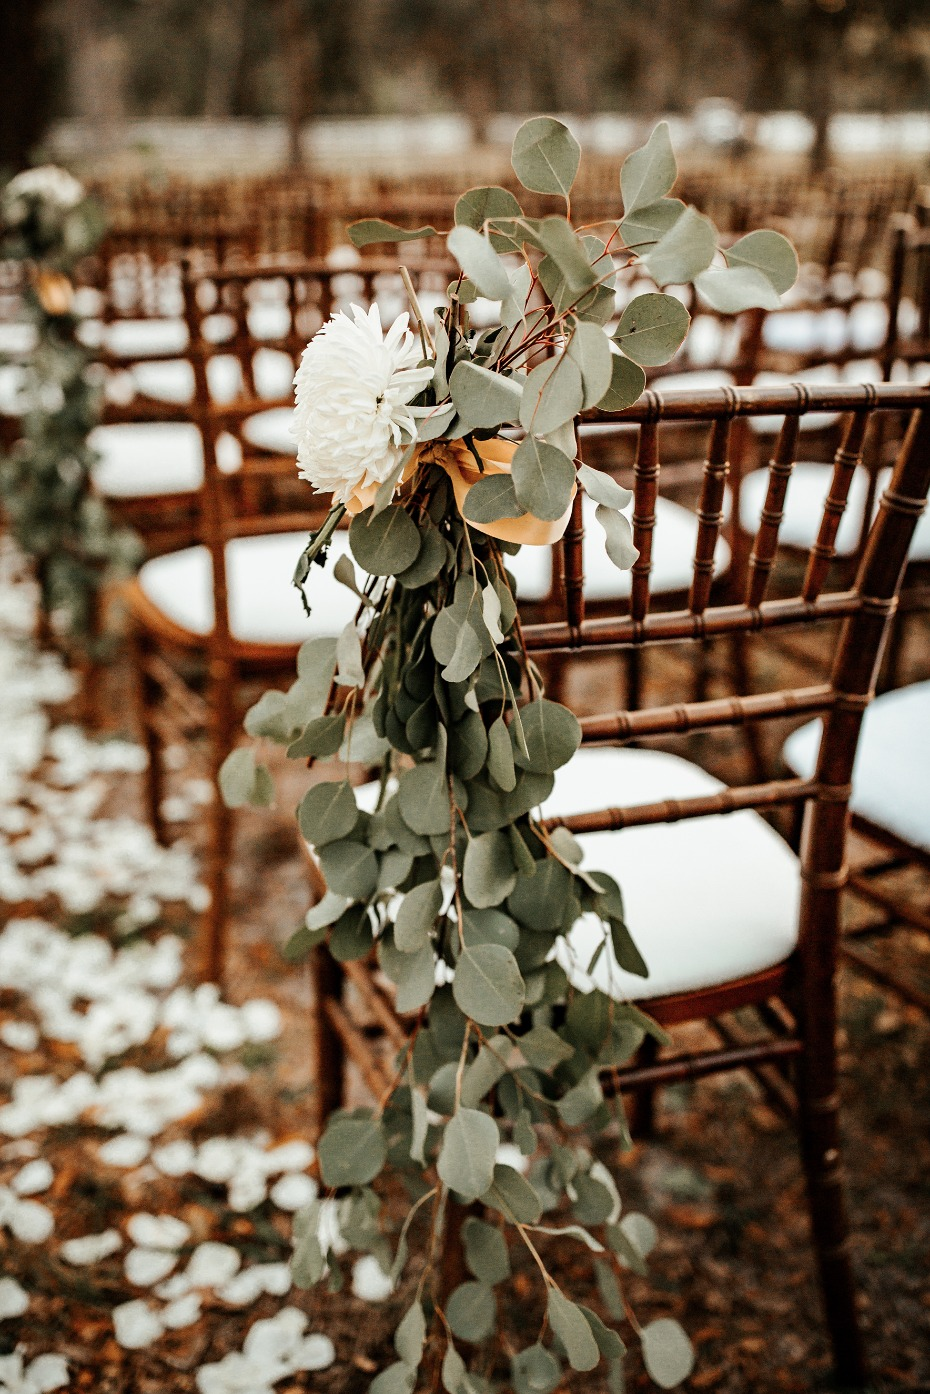 Chair decor idea with eucalyptus